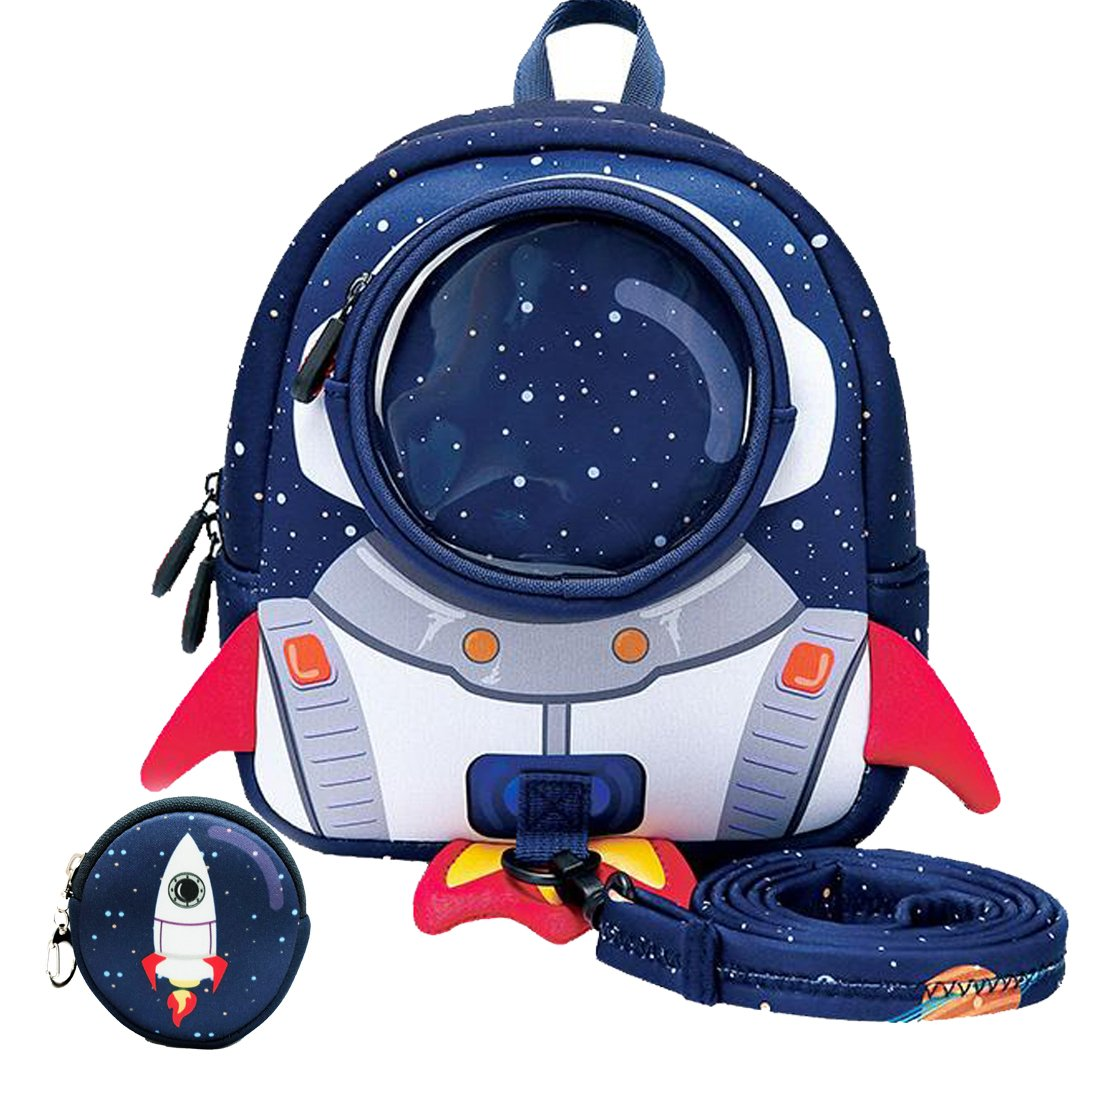 Rocket Toddler Backpack with Leash,3-9 Years Anti-lost Kids Backpack,Children Backpack for boys girls